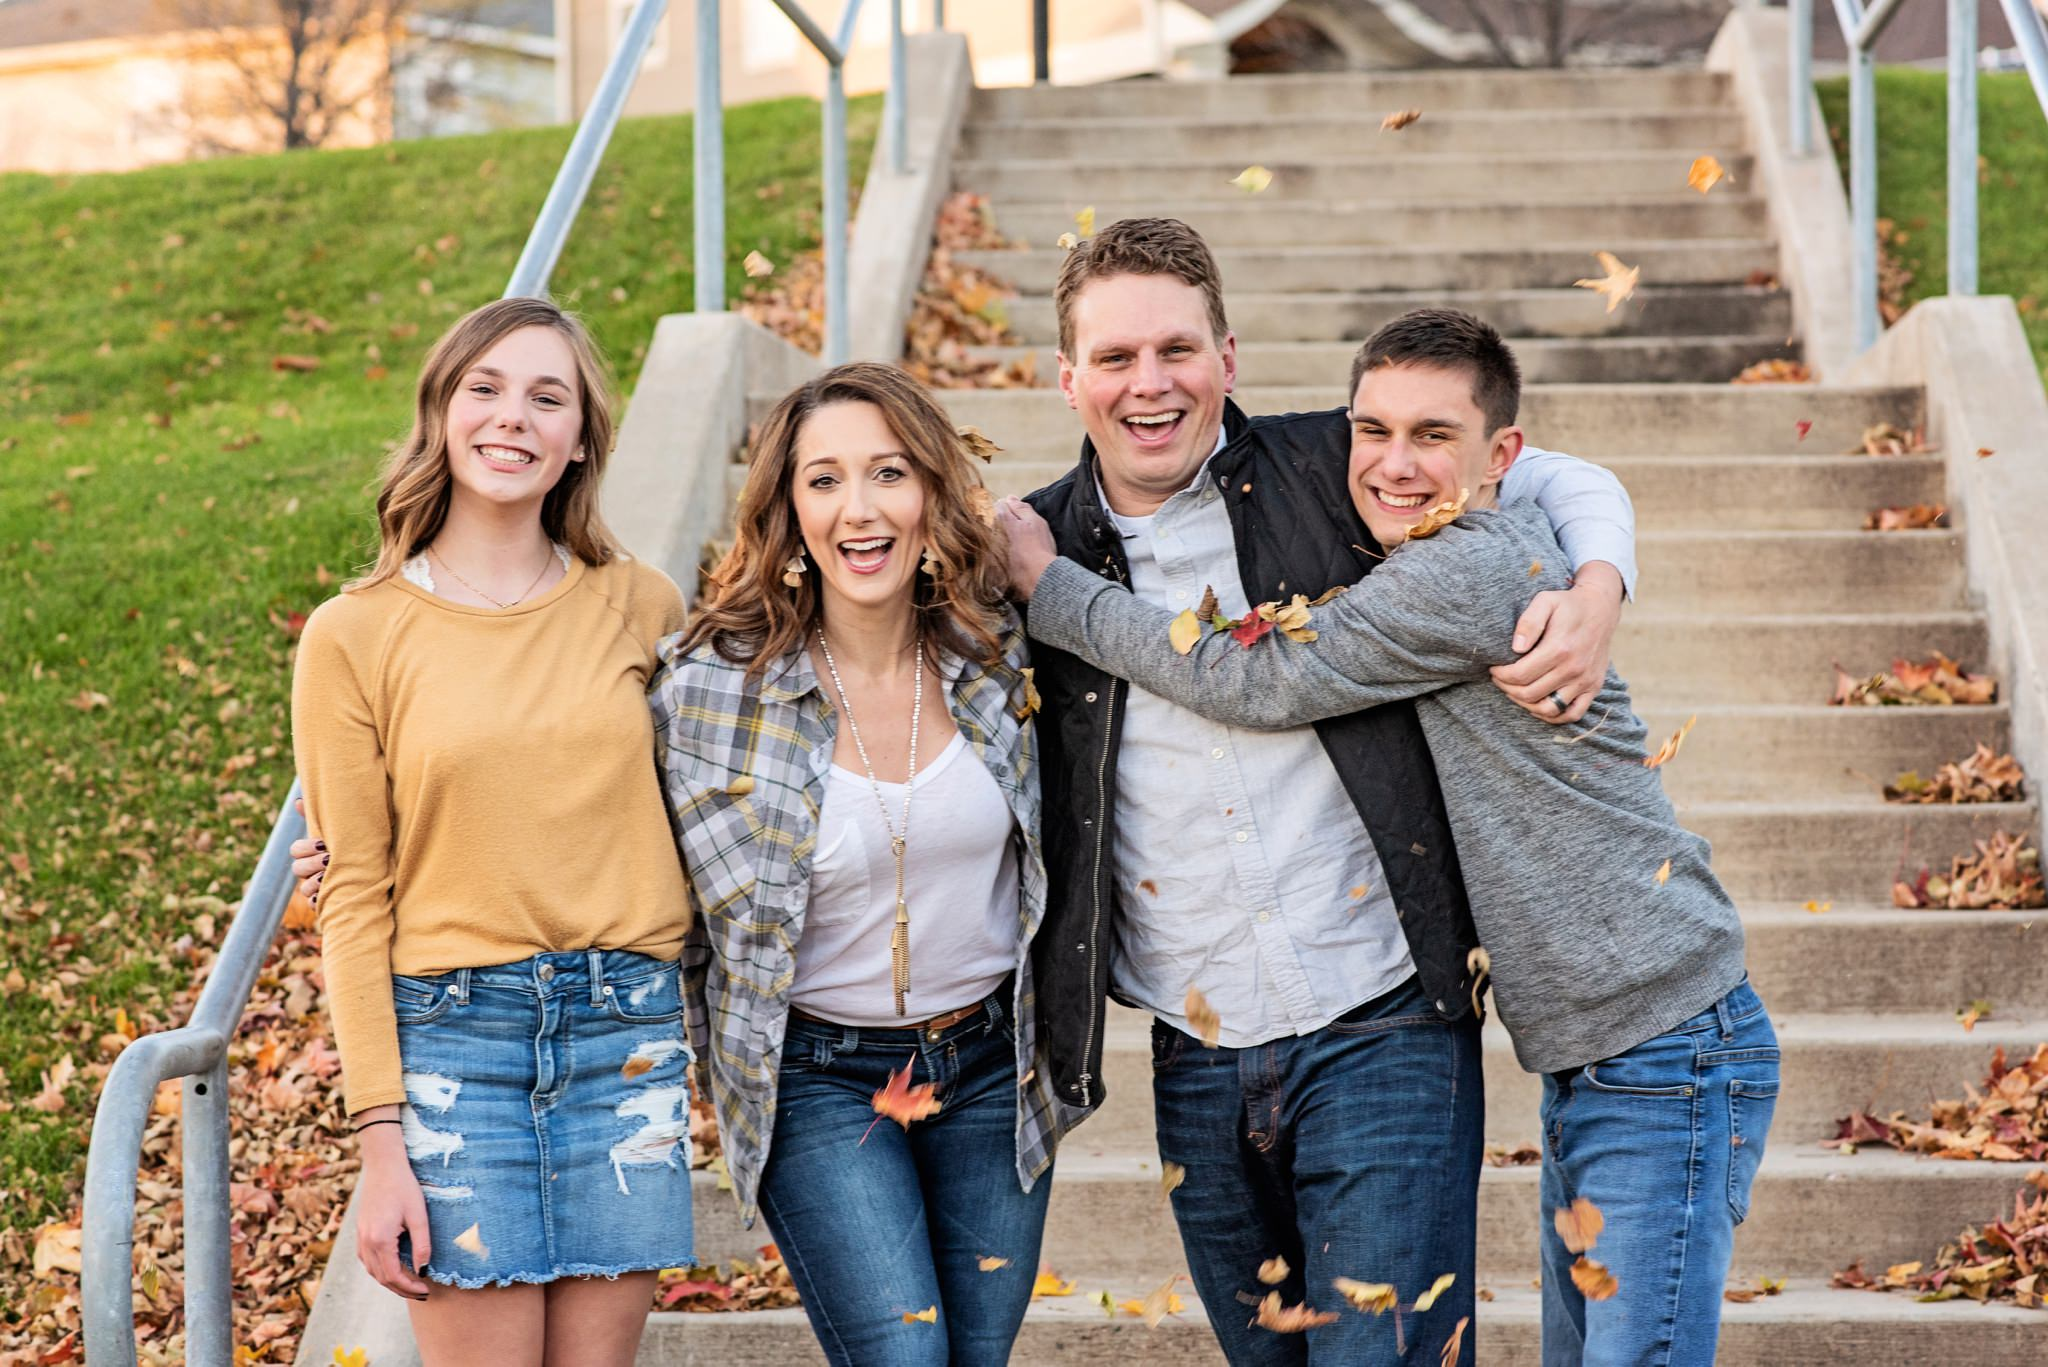 Wittwer-Family-Rotella-Photography-2018-68_WEB.jpg